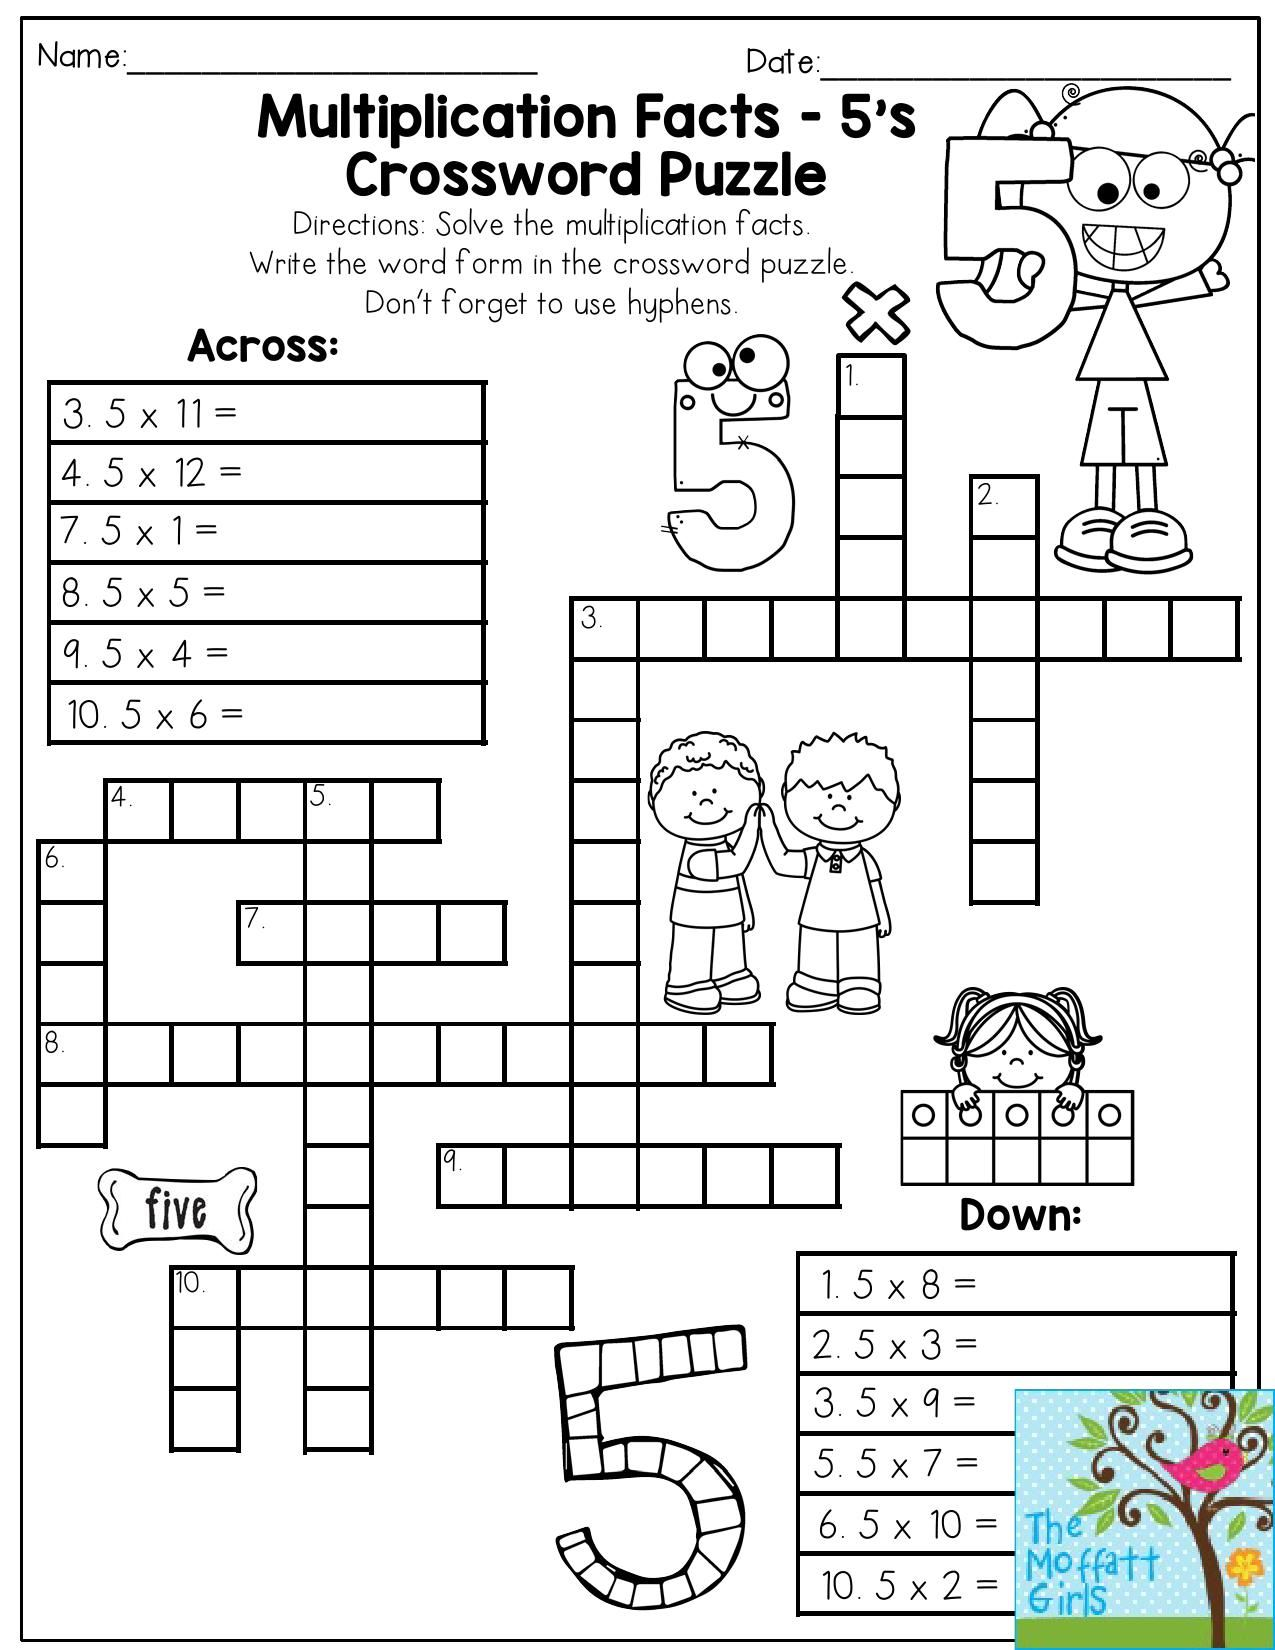 multiplication facts crossword puzzle third grade students love this one it makes practicing. Black Bedroom Furniture Sets. Home Design Ideas